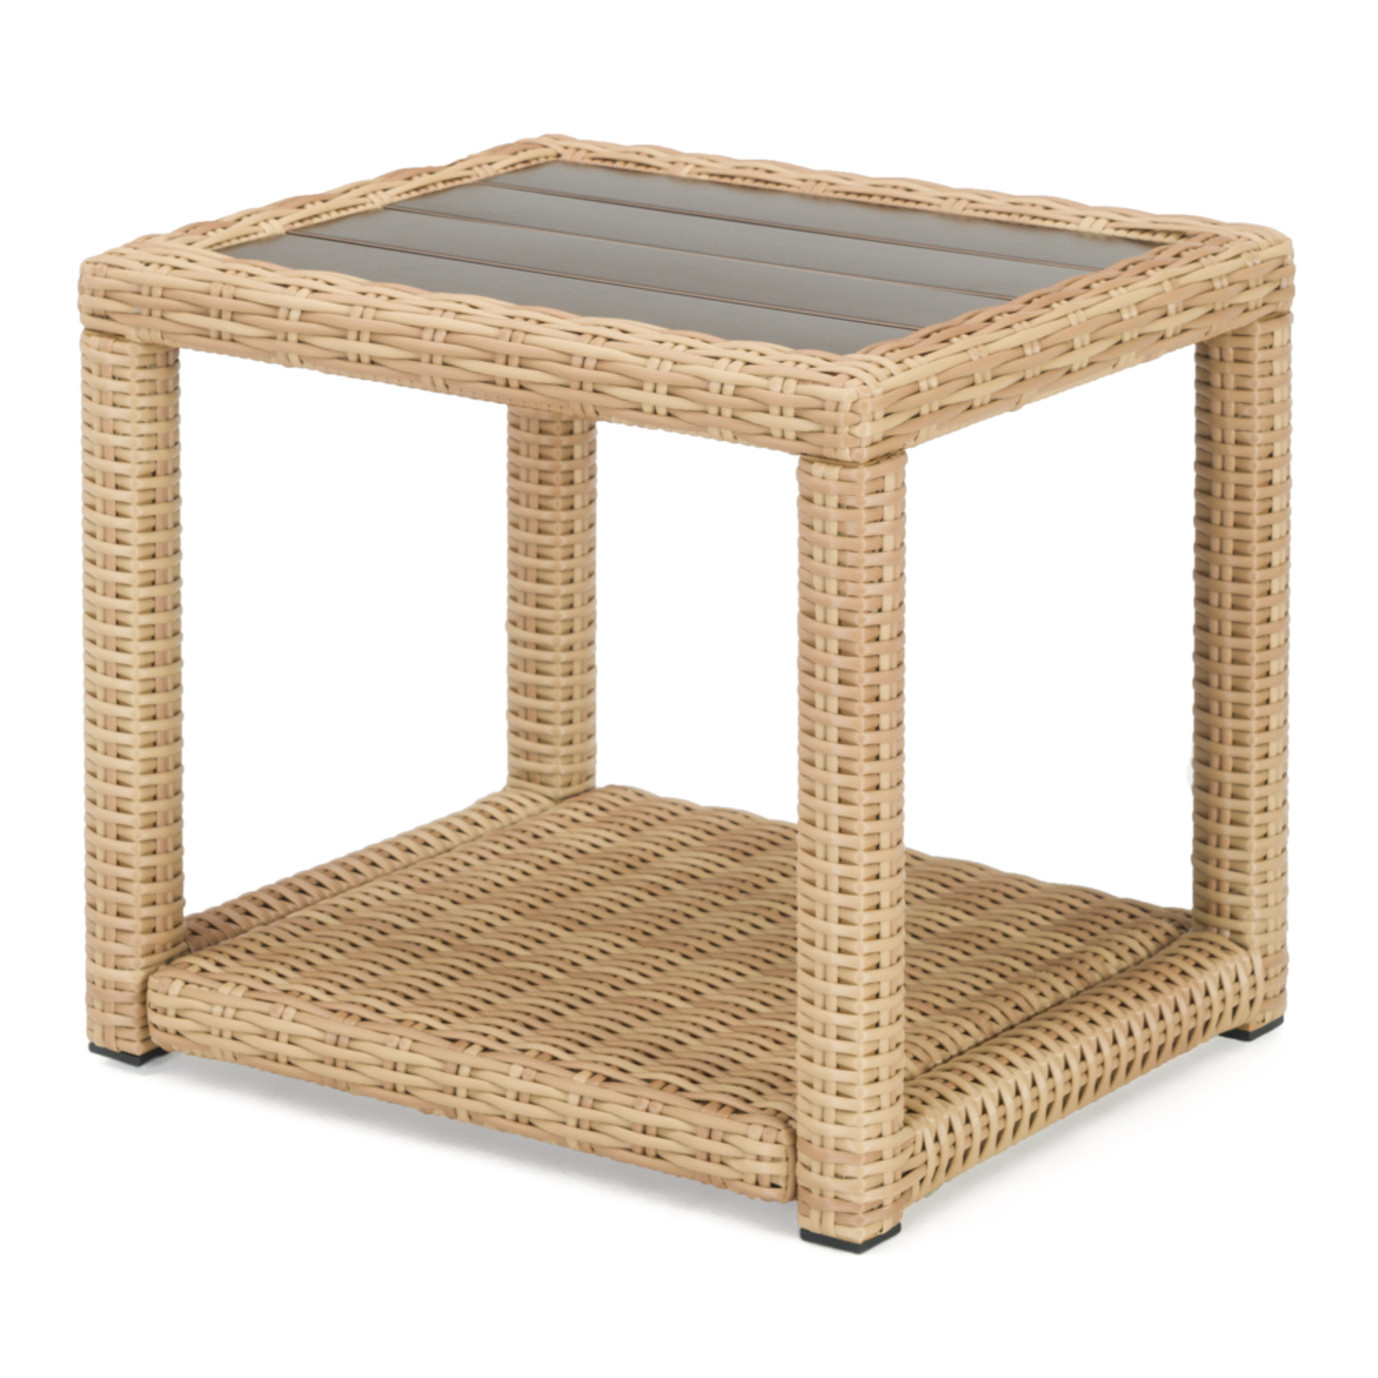 Portofino® Prestige 22x18 Aluminum Side Table - Sand